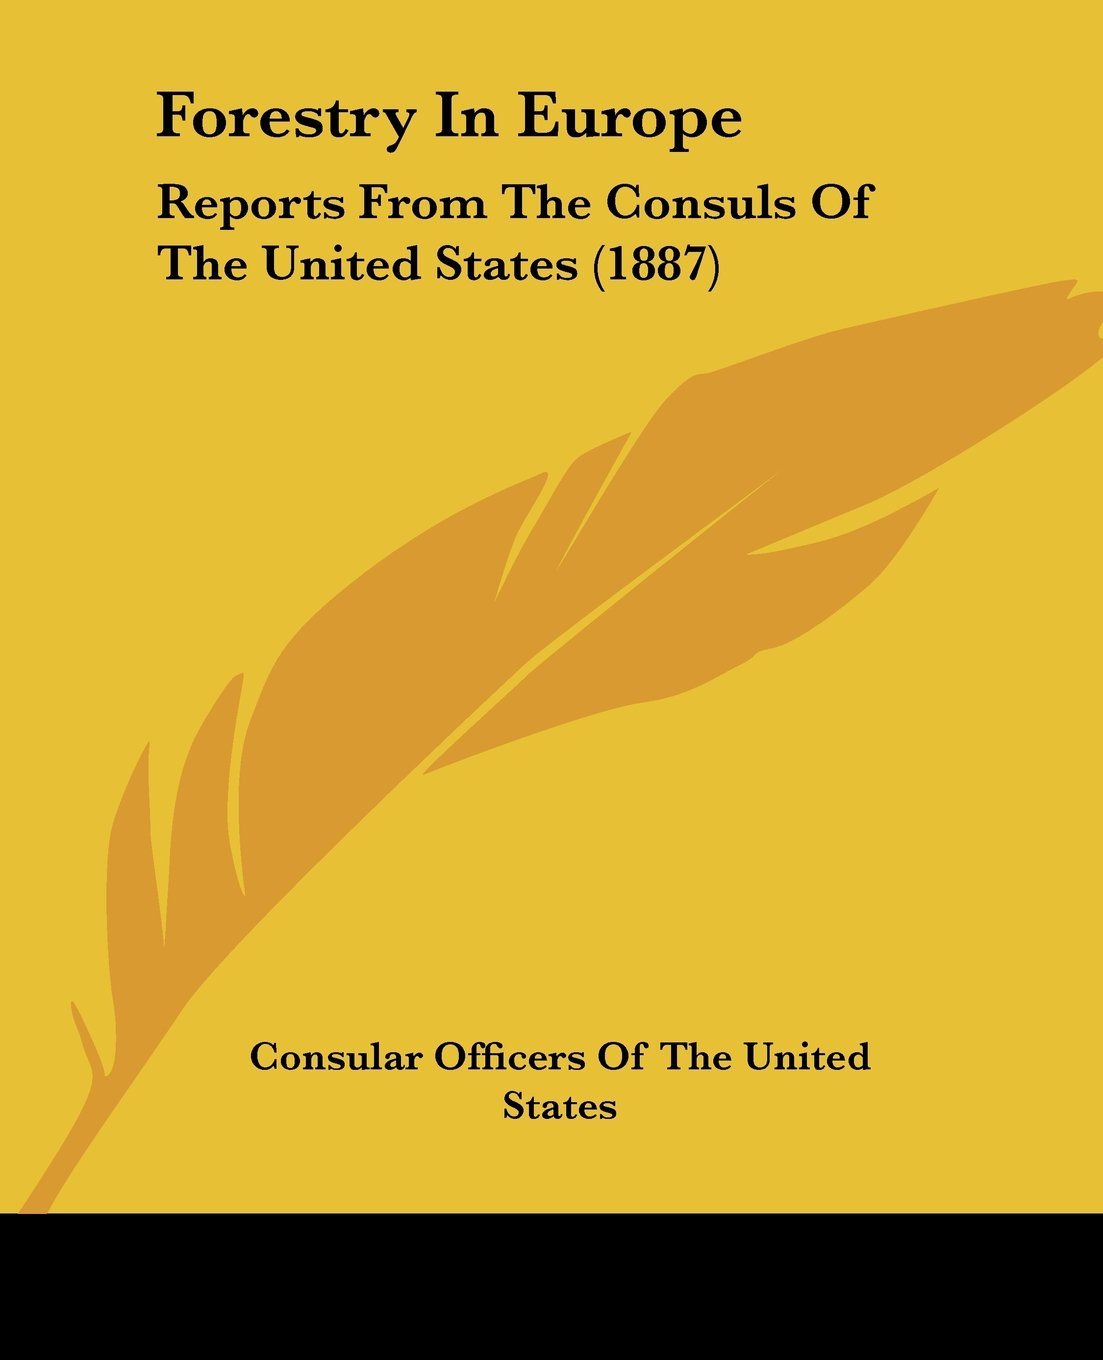 Forestry In Europe: Reports From The Consuls Of The United States (1887) PDF